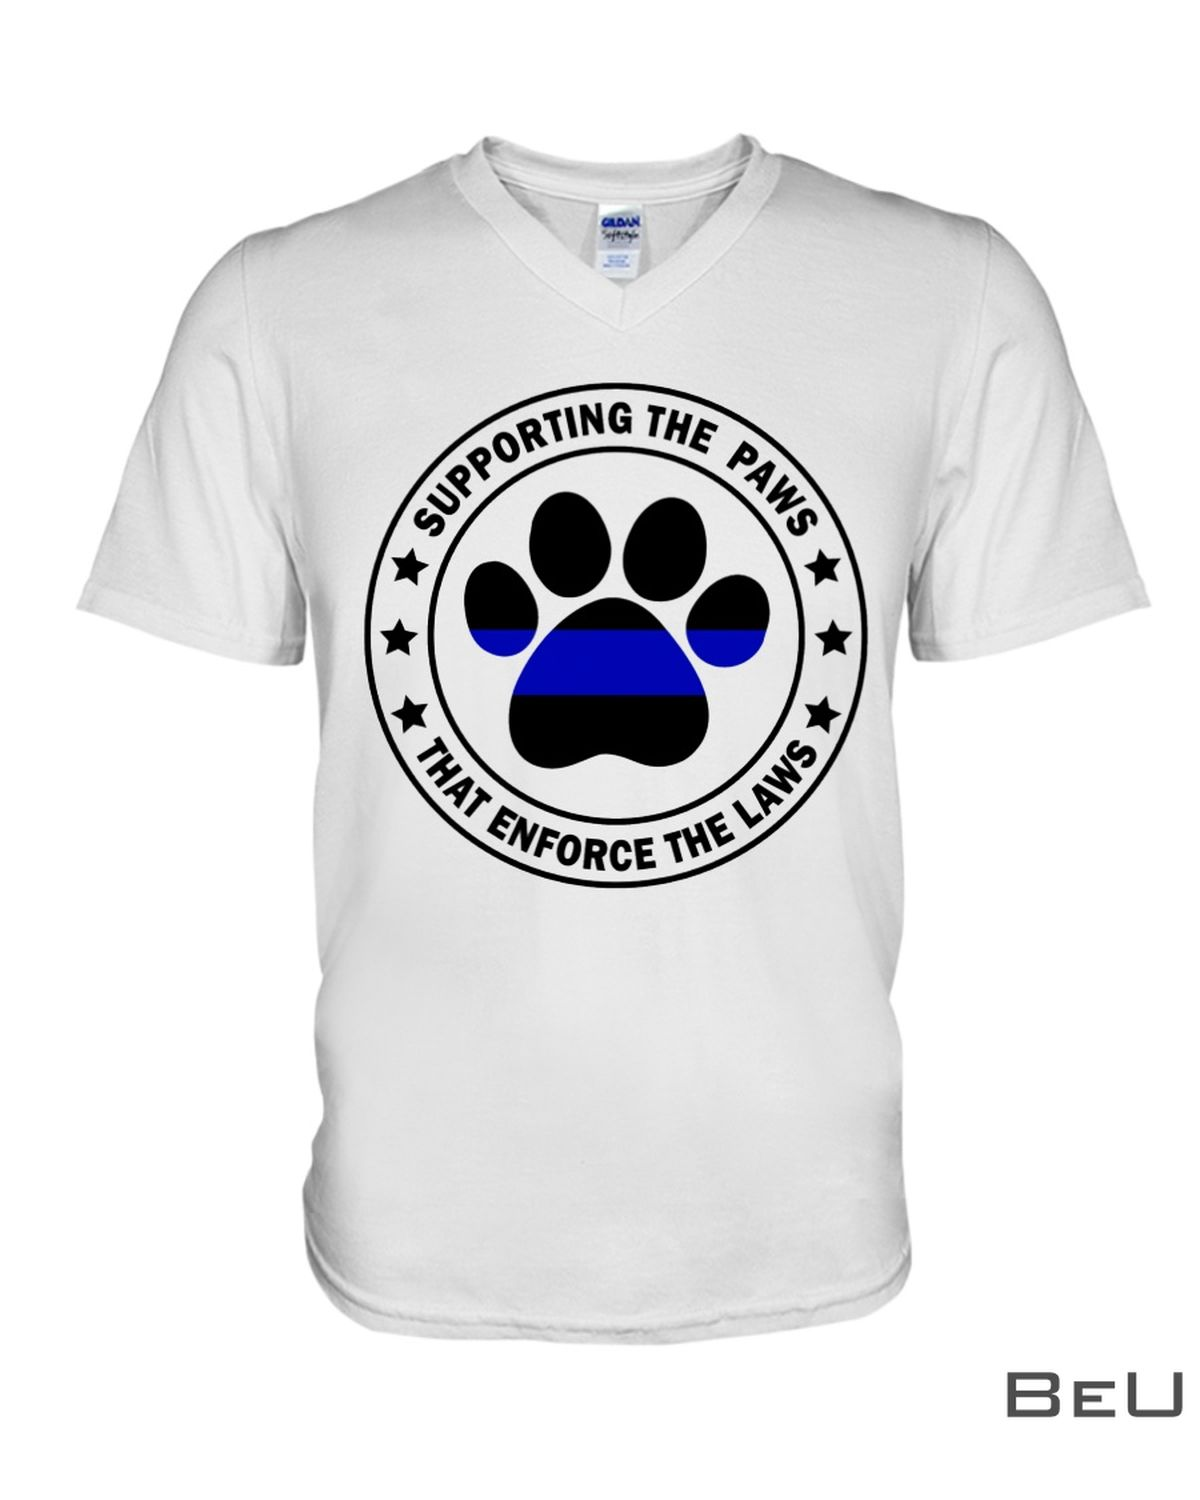 Supporting The Paws That Enforce Th Laws Shirt x